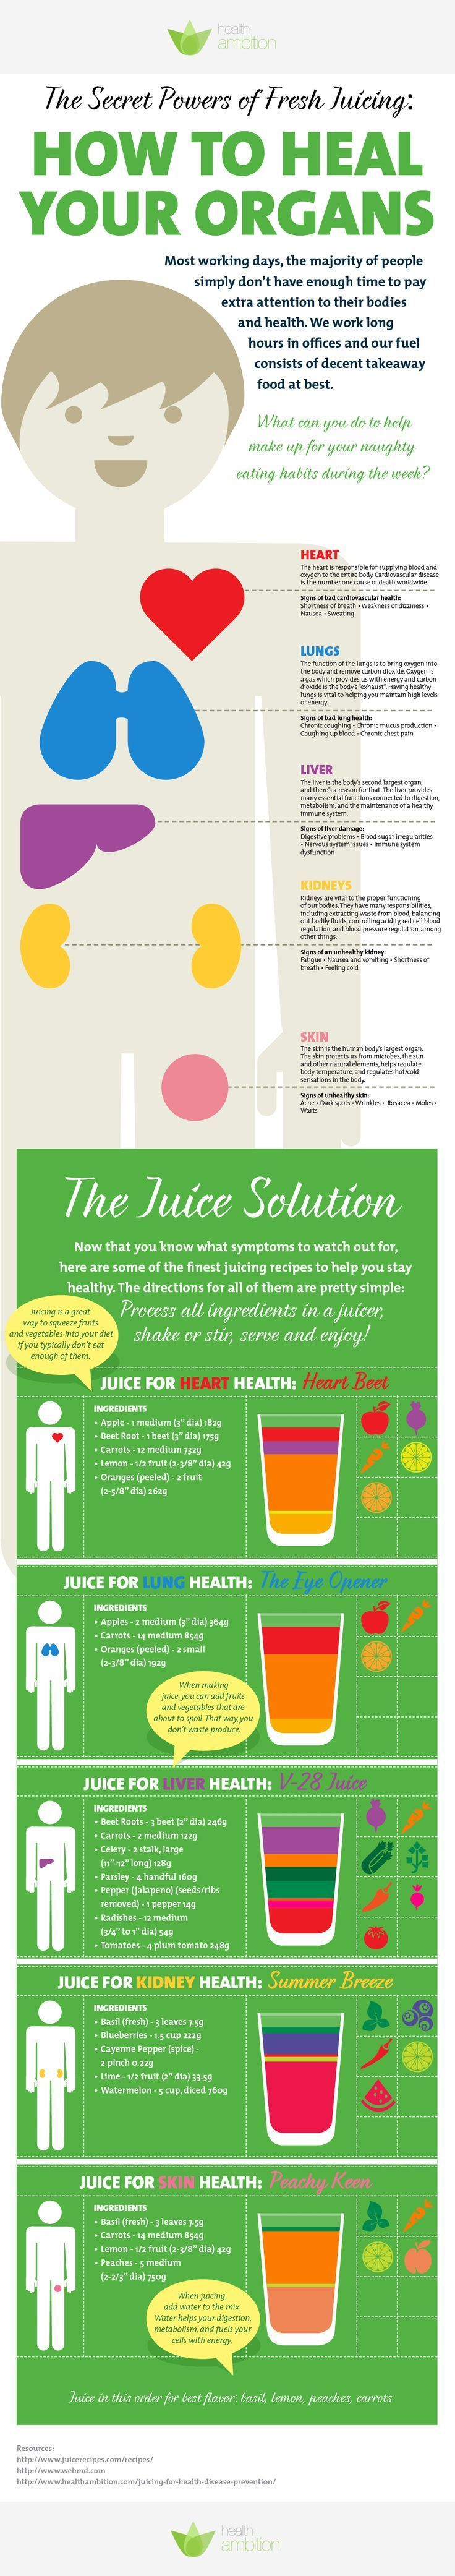 asics australia cricket Juicing Recipes For Organs Health amp Fitness  Juicing Recipes For and Recipe